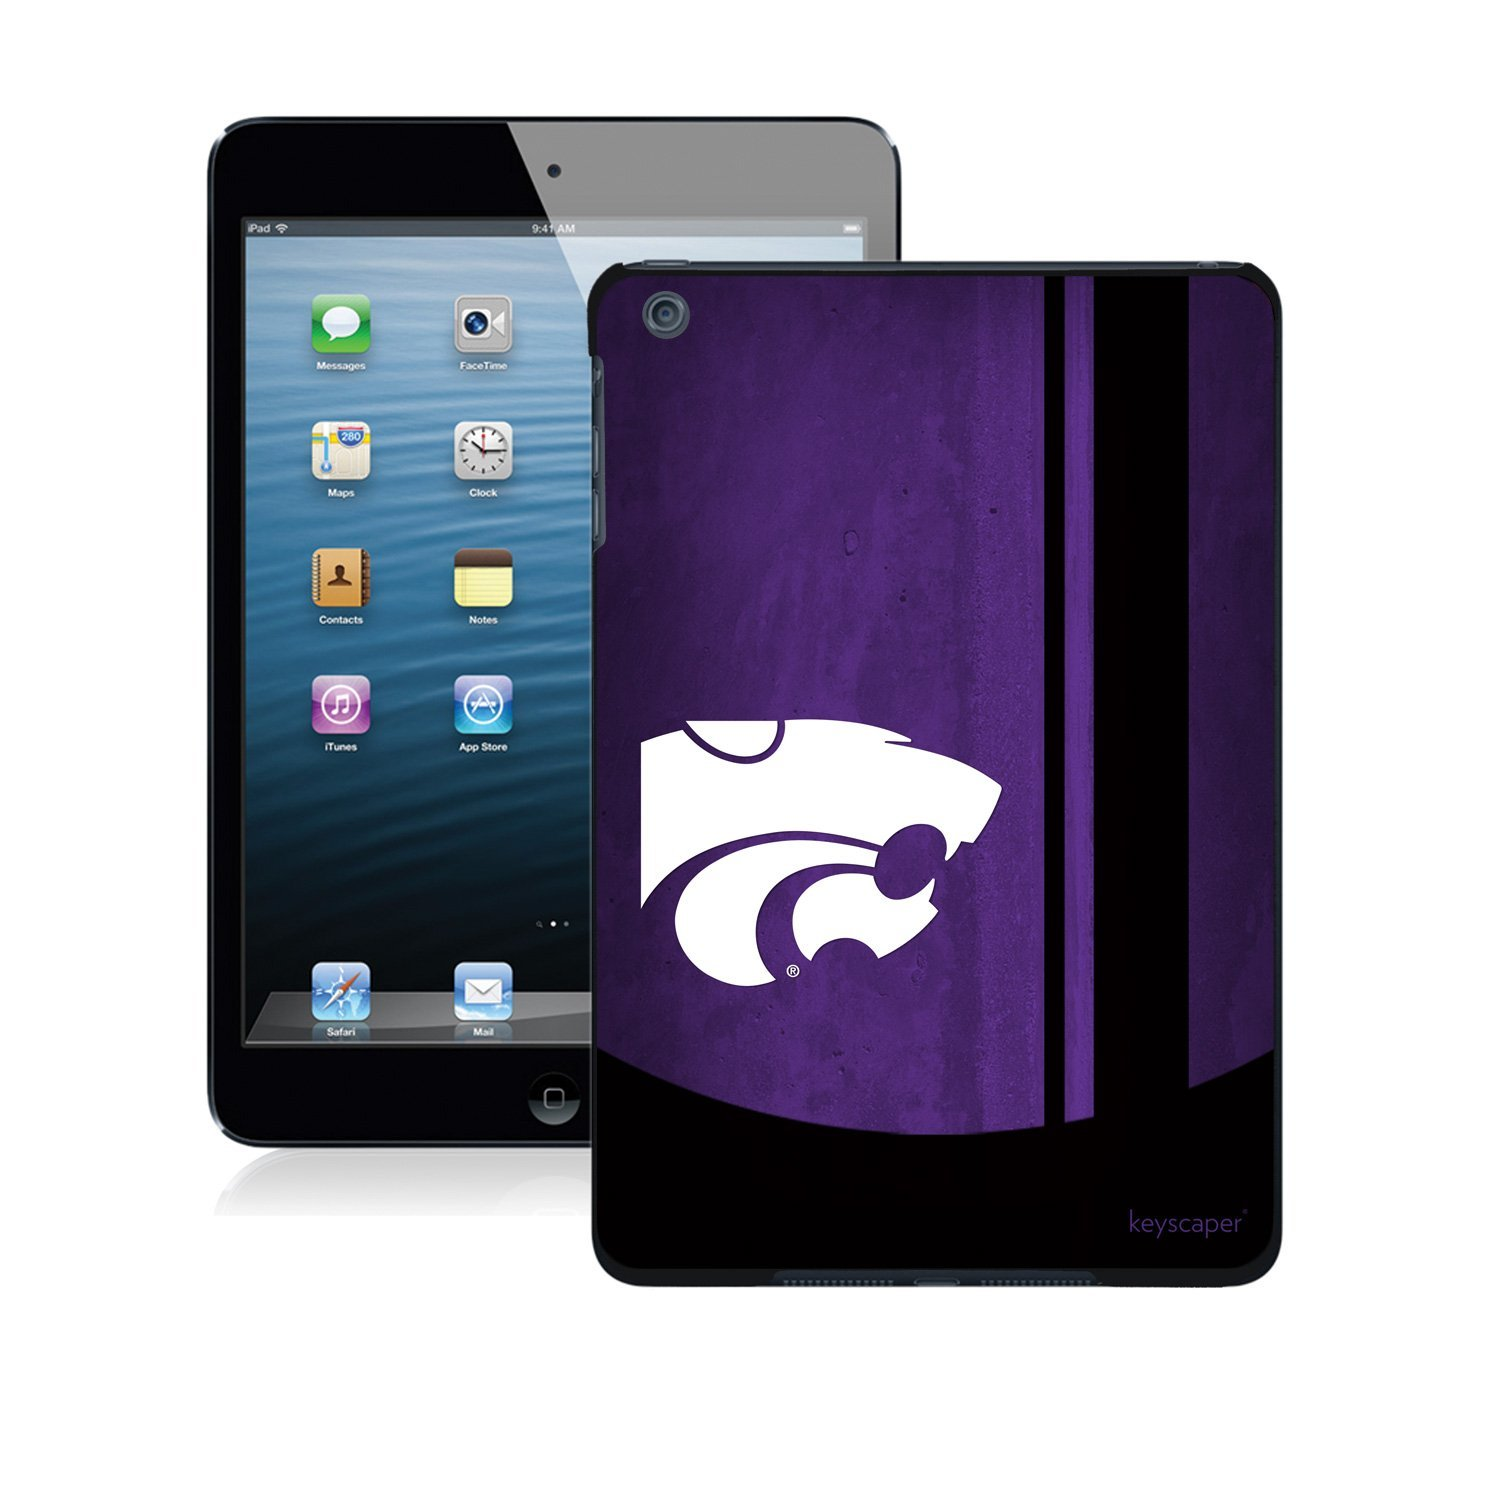 Kansas State Wildcats iPad Mini Case officially licensed by Kansas State University for the Apple iPad Mini by keyscaper®